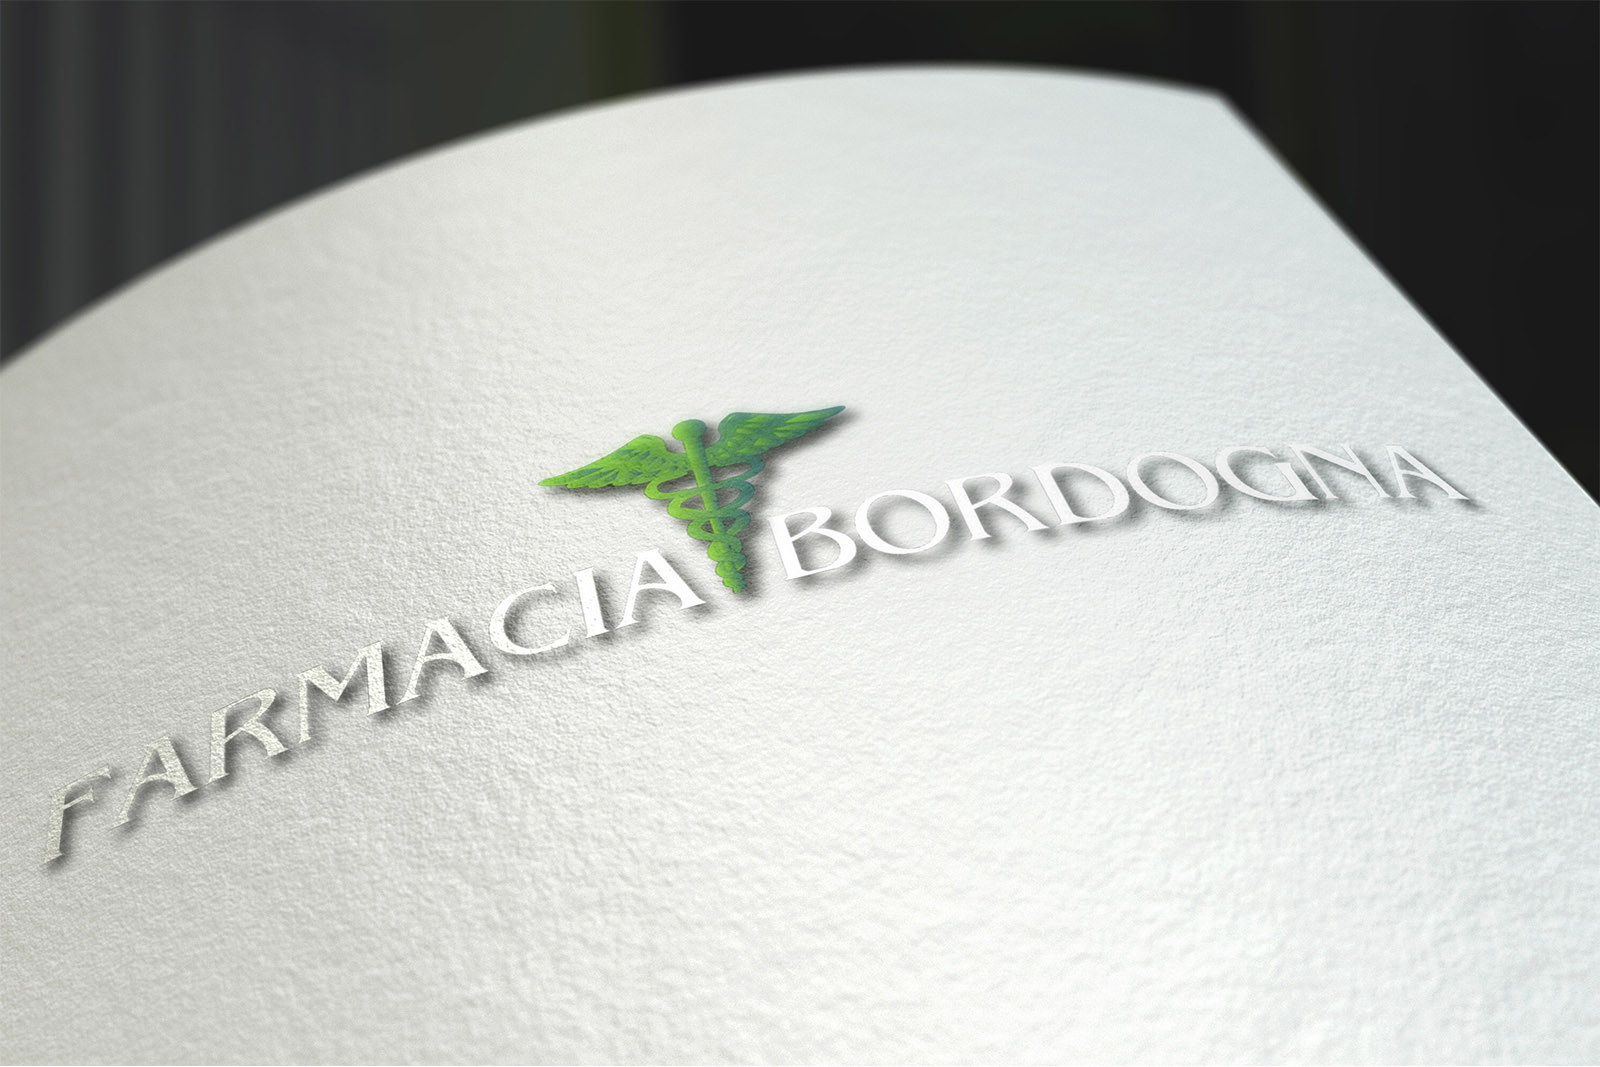 Tescaroli Creative and Logo Farmacia Bordogna